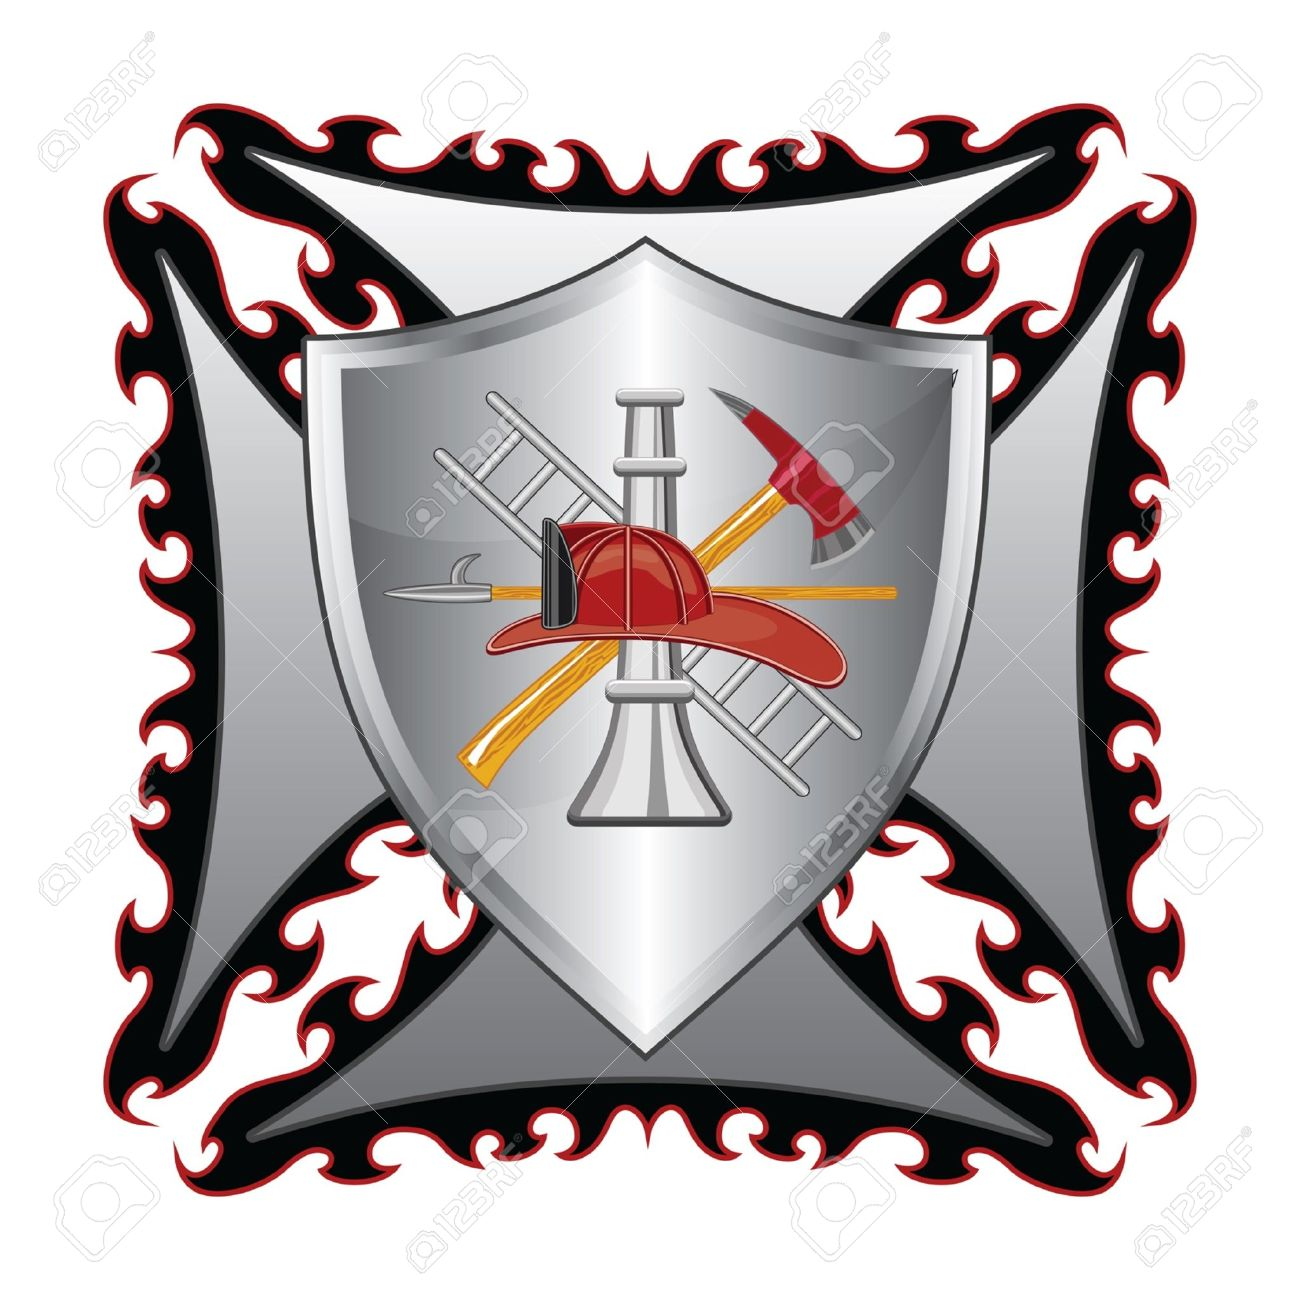 Firefighter Cross With Shield is an illustration of a fire department or firefighter�s  Maltese cross symbol with shield and firefighter logo. Stock Vector - 16797797